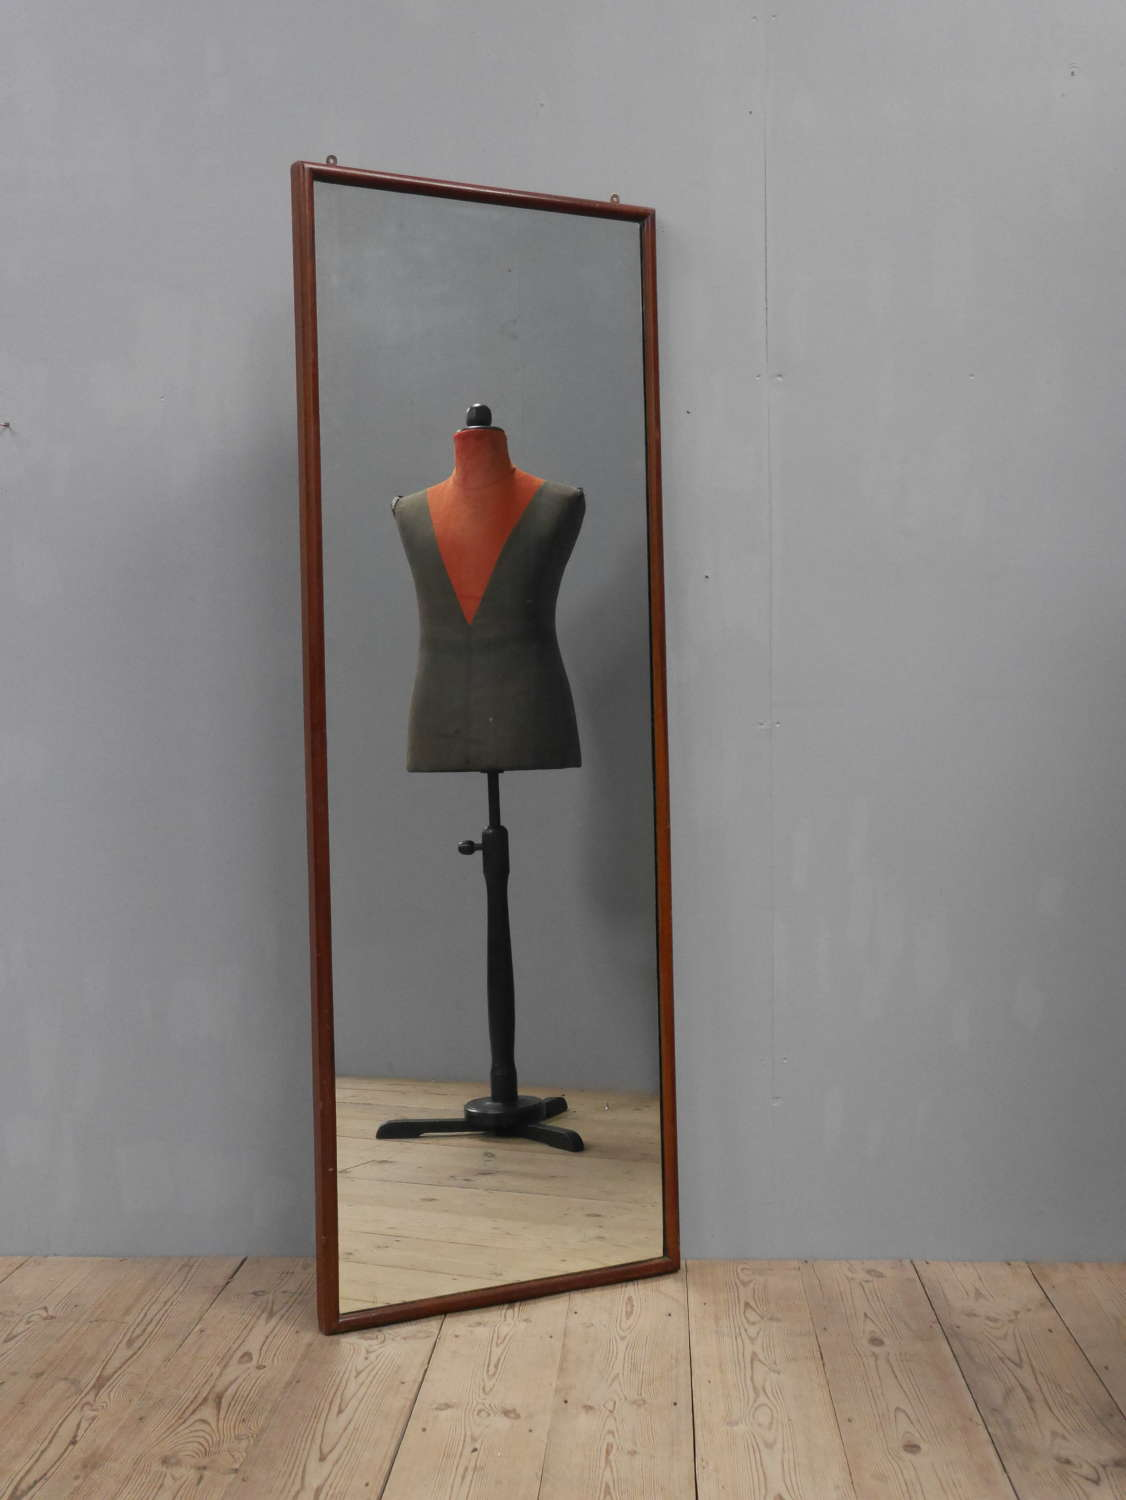 Mahogany Outfitters' Mirror